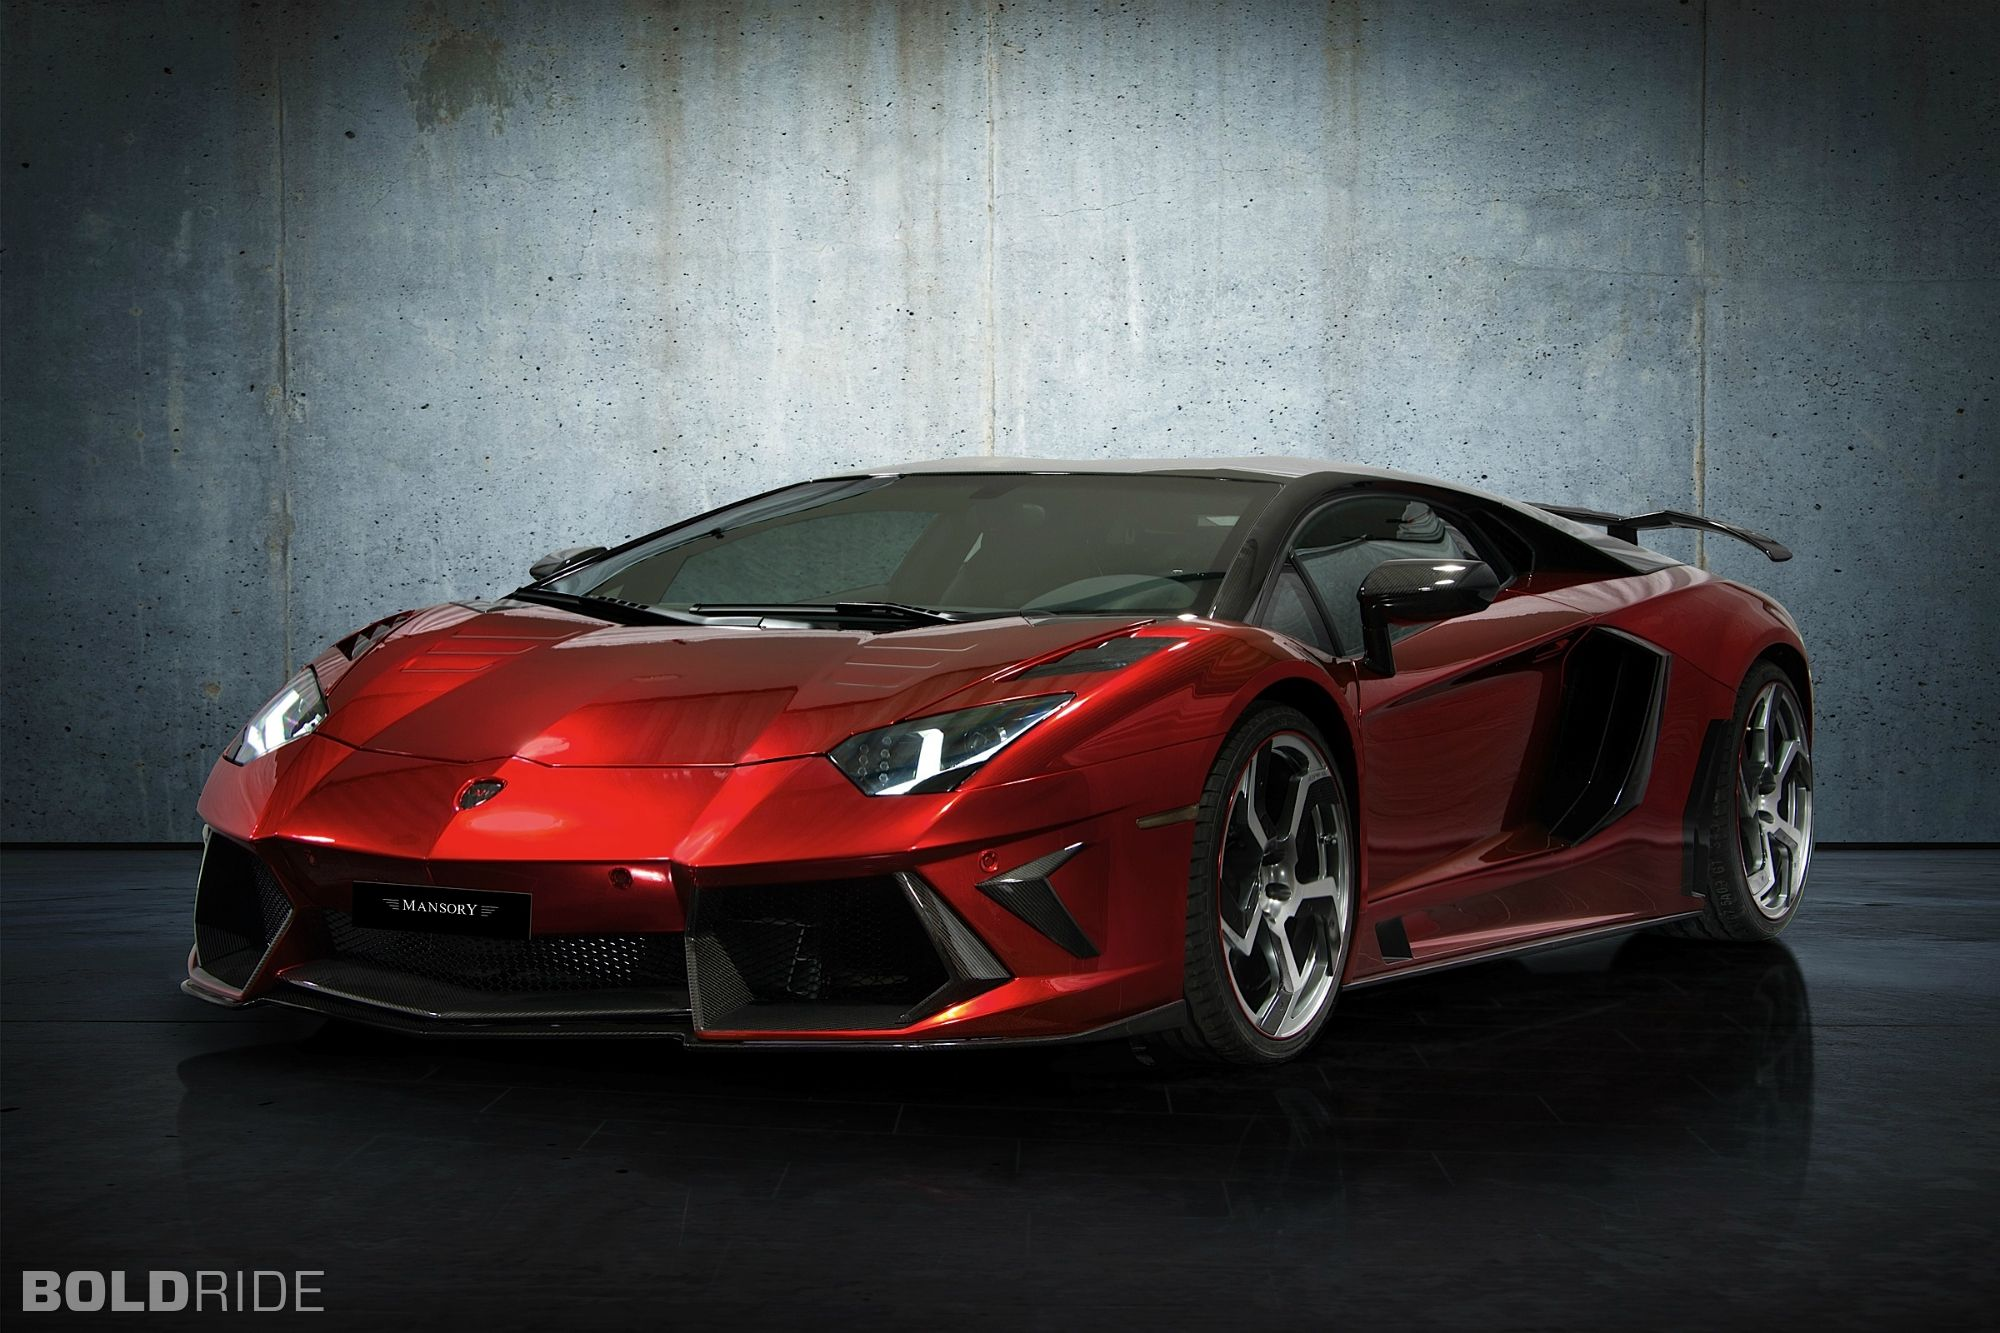 Motor1 Com Car News Reviews And Analysis Lamborghini Aventador Lp700 4 Lamborghini Aventador Lp700 Red Lamborghini